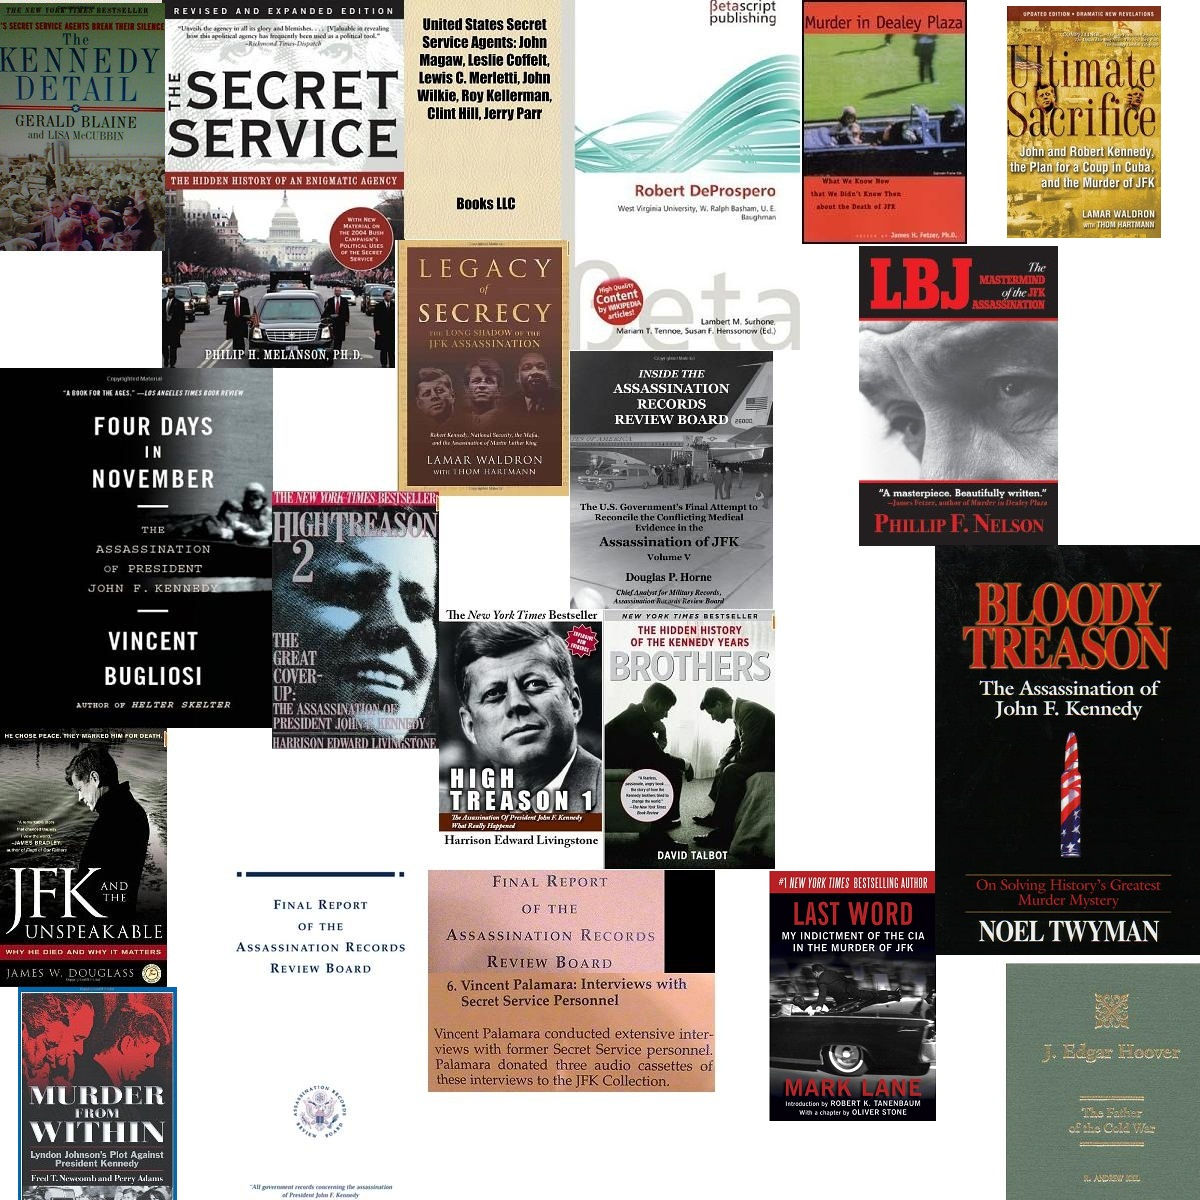 VINCE PALAMARA- JUST SOME OF THE MANY SECRET SERVICE/ JFK BOOKS I AM IN